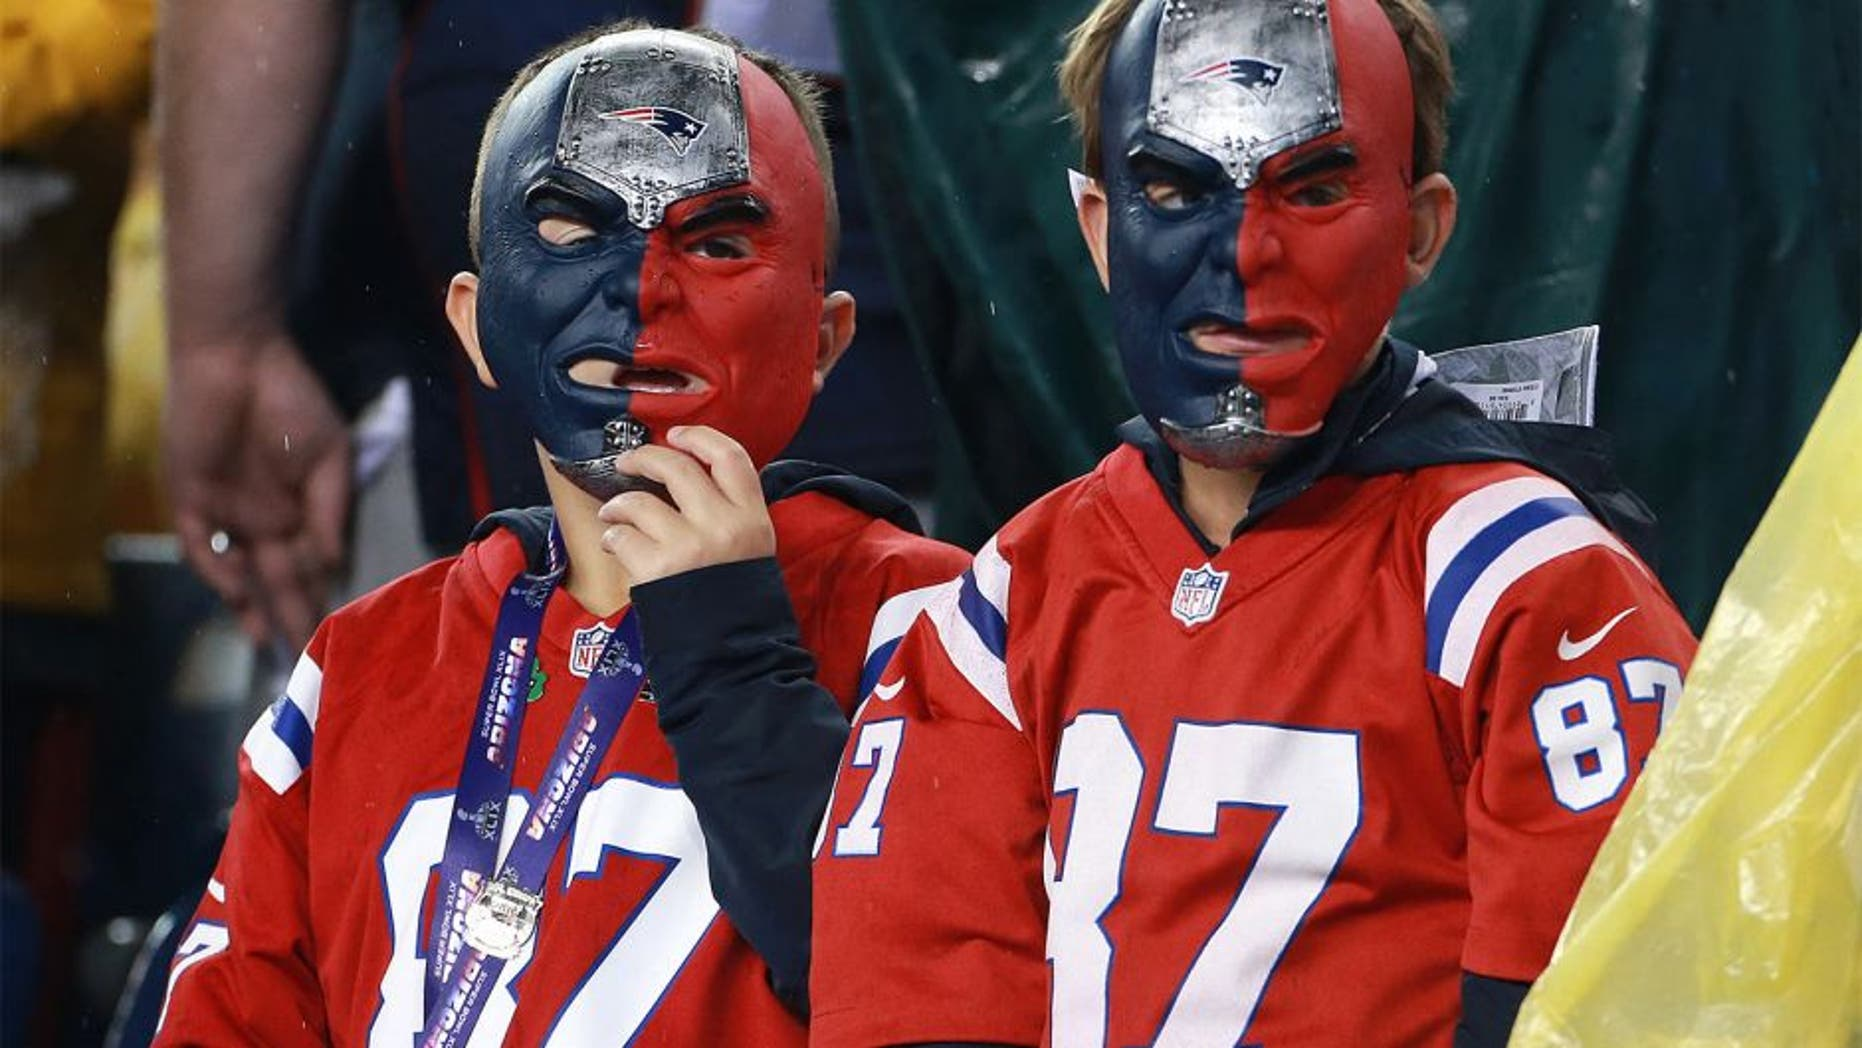 FOXBOROUGH, MA - SEPTEMBER 10: Fans at Gillette Stadium before the New England Patriots play the Pittsburgh Steelers on Thursday, Sept. 10, 2015. (Photo by Jim Davis/The Boston Globe via Getty Images)